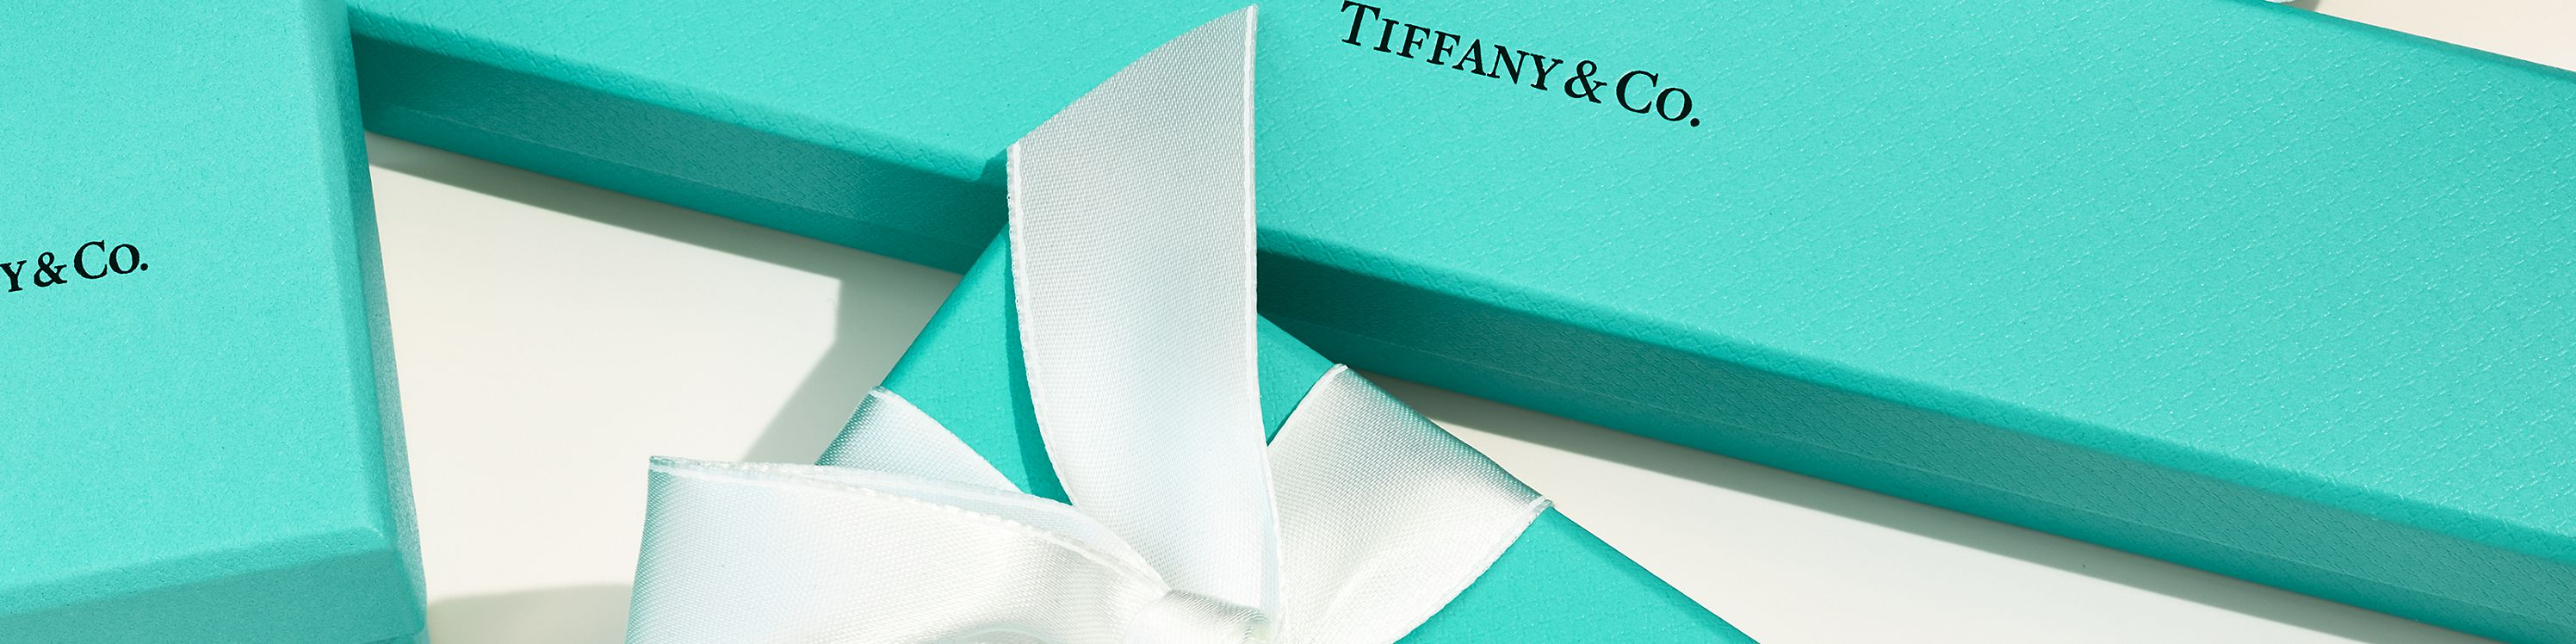 Хронология событий Tiffany & Co.